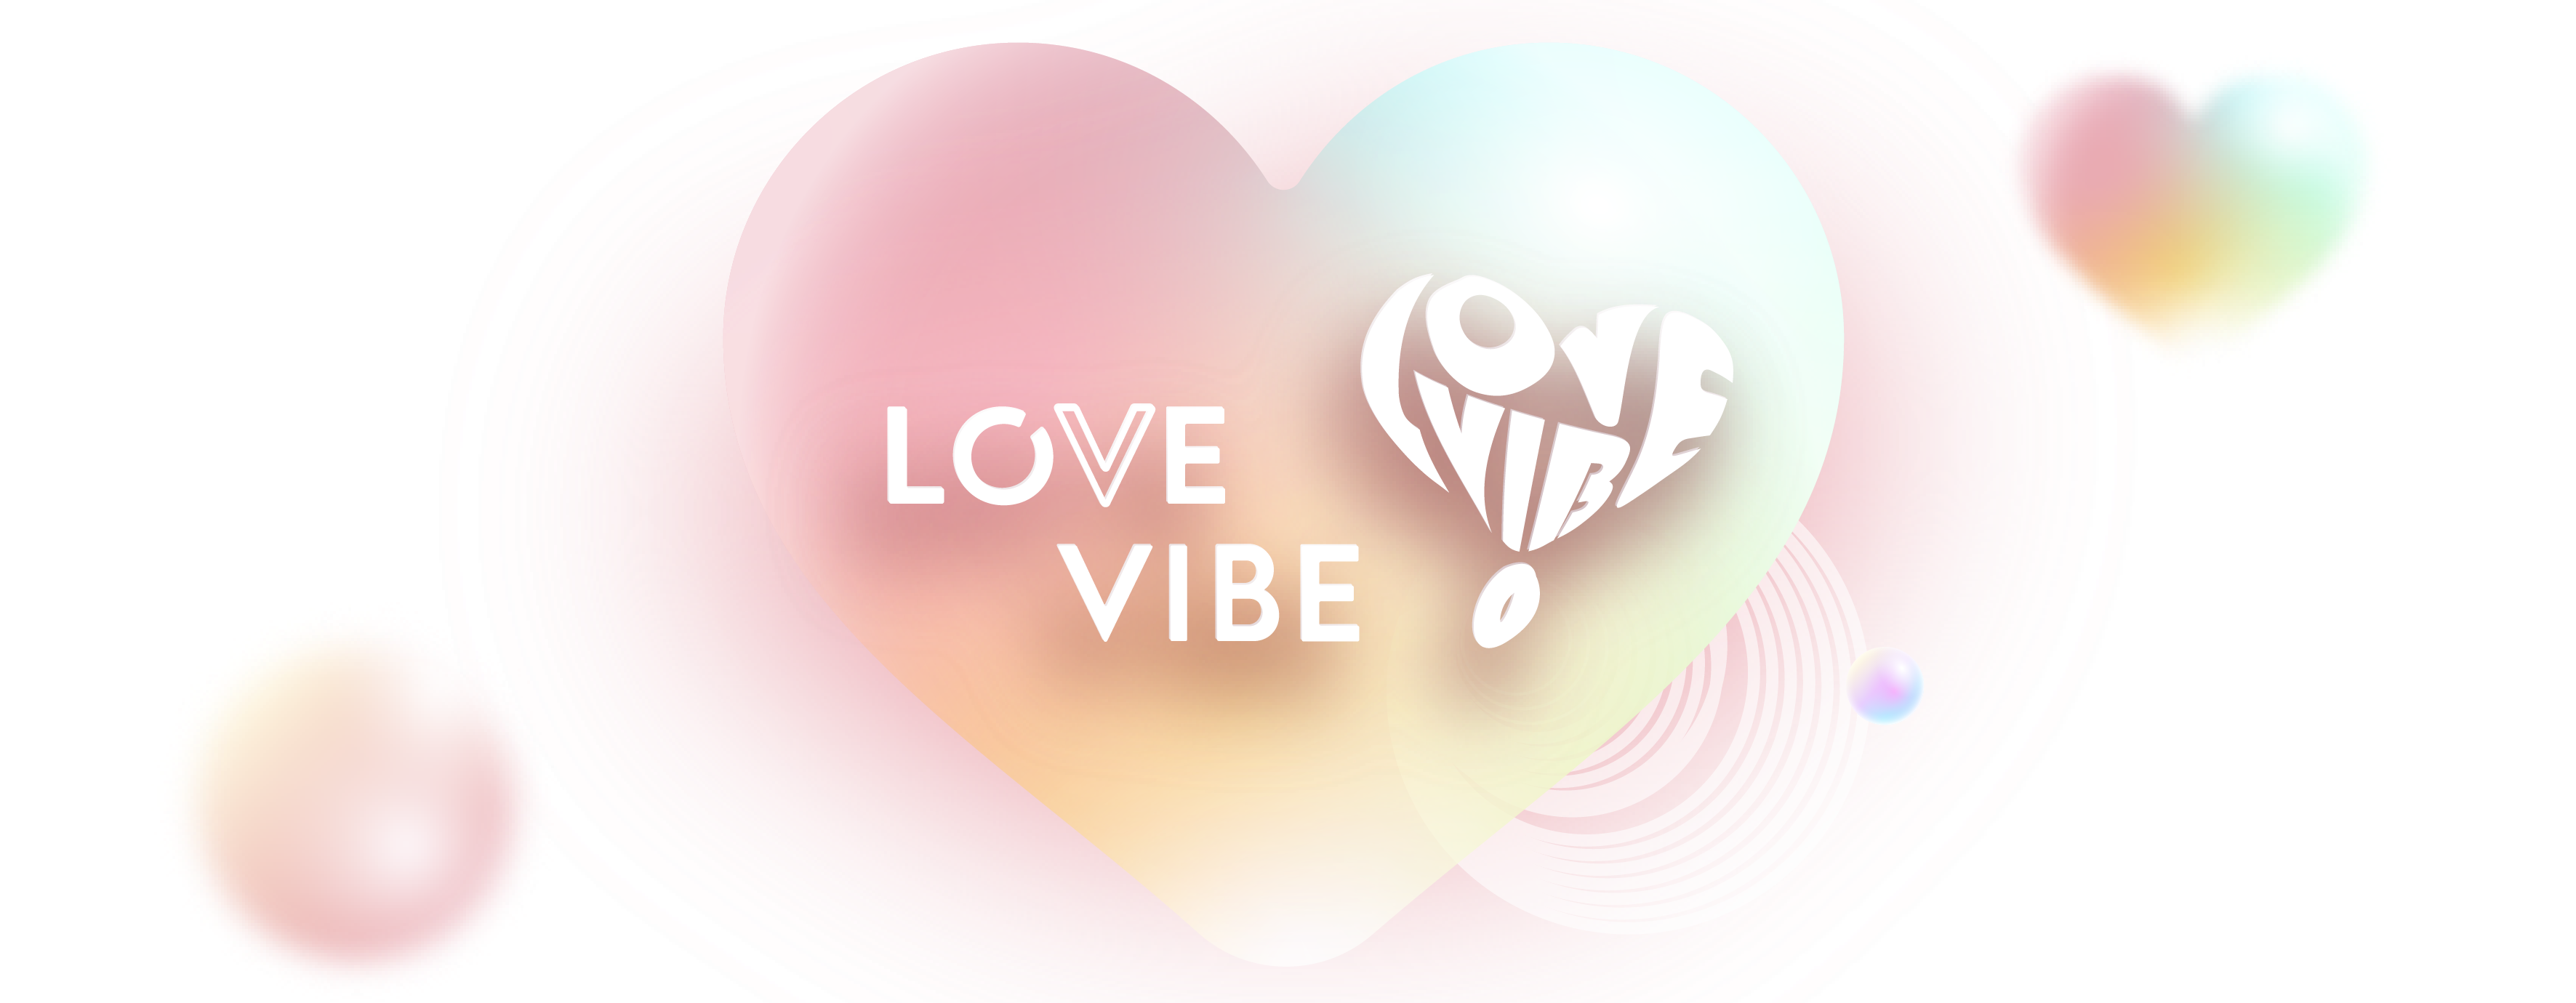 Tickets for Love Vibe Pop Up in New York from ShowClix